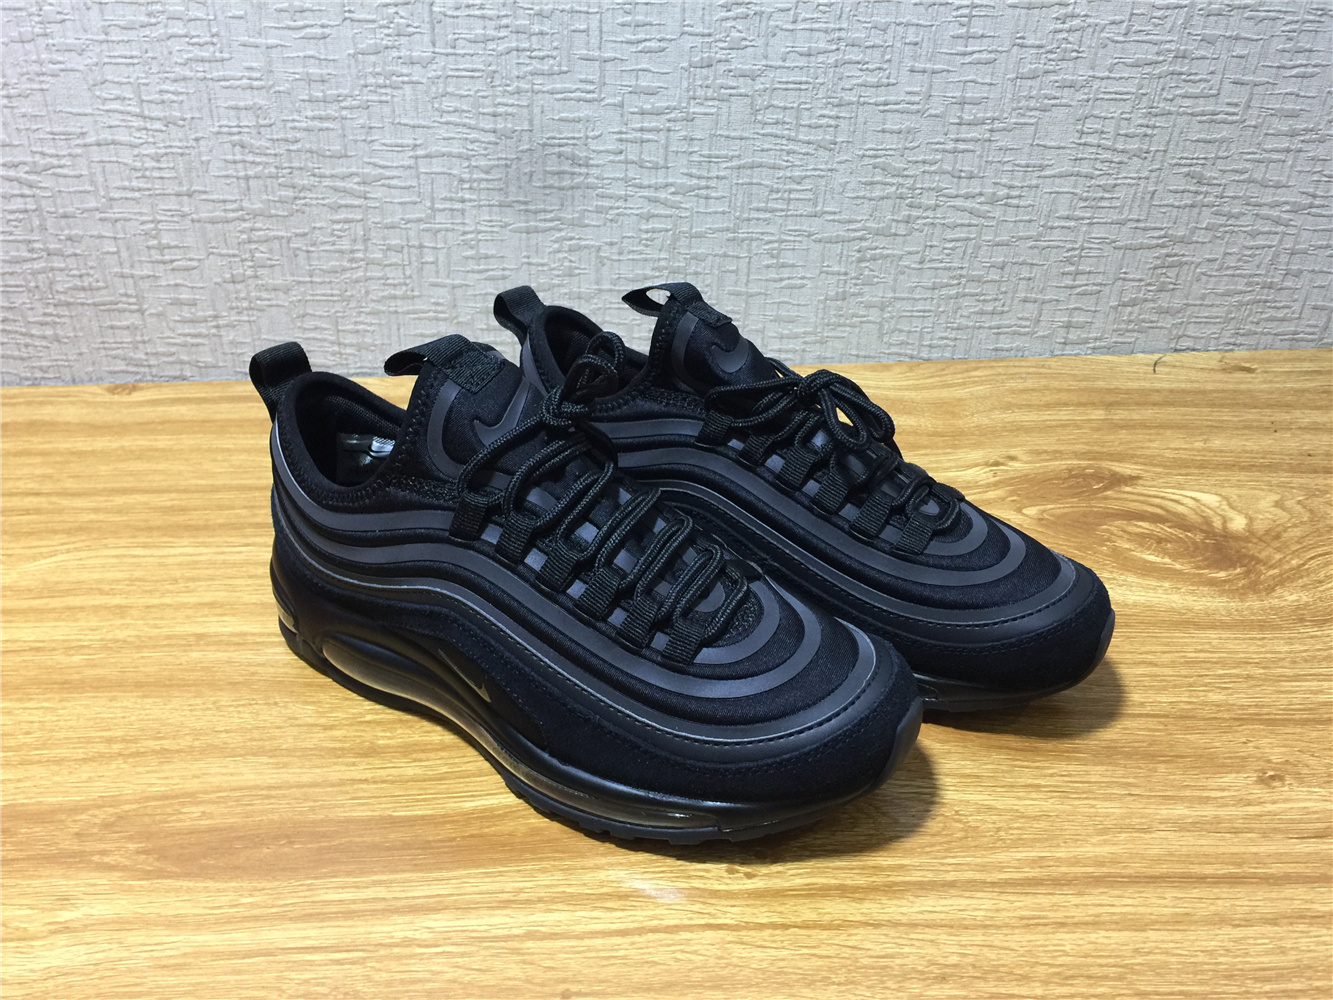 Nike Air Max 97 Hombres 0027 Imágenes lDX3R4ry3H